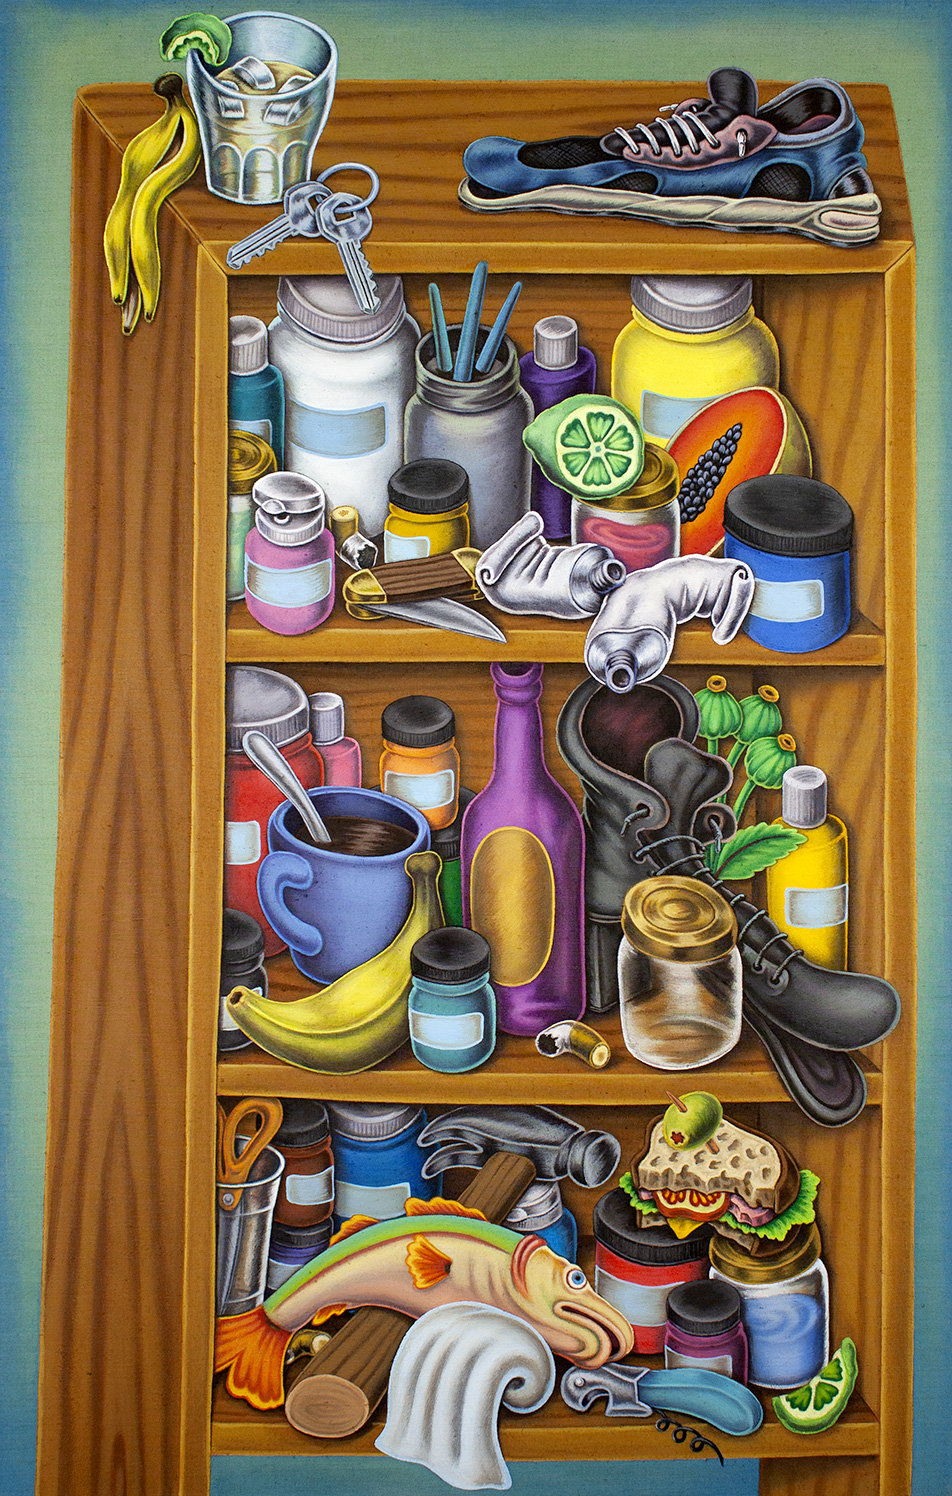 """Collected Objects on Shelves""#28""x44"""